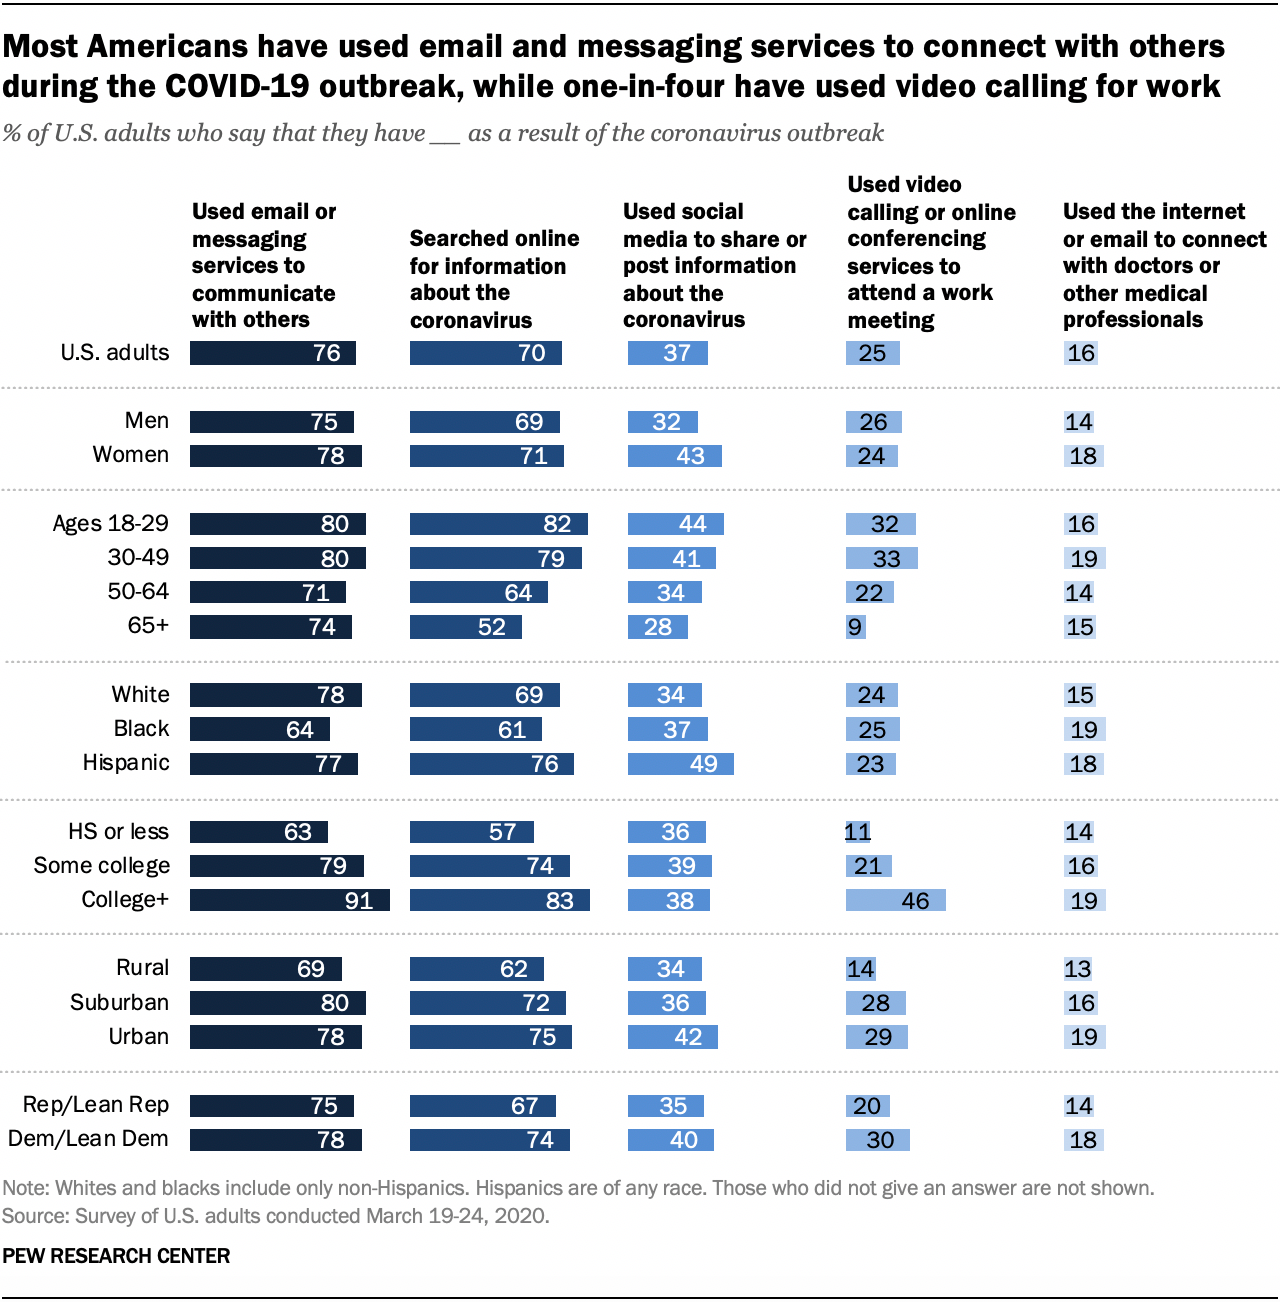 Most Americans have used email and messaging services